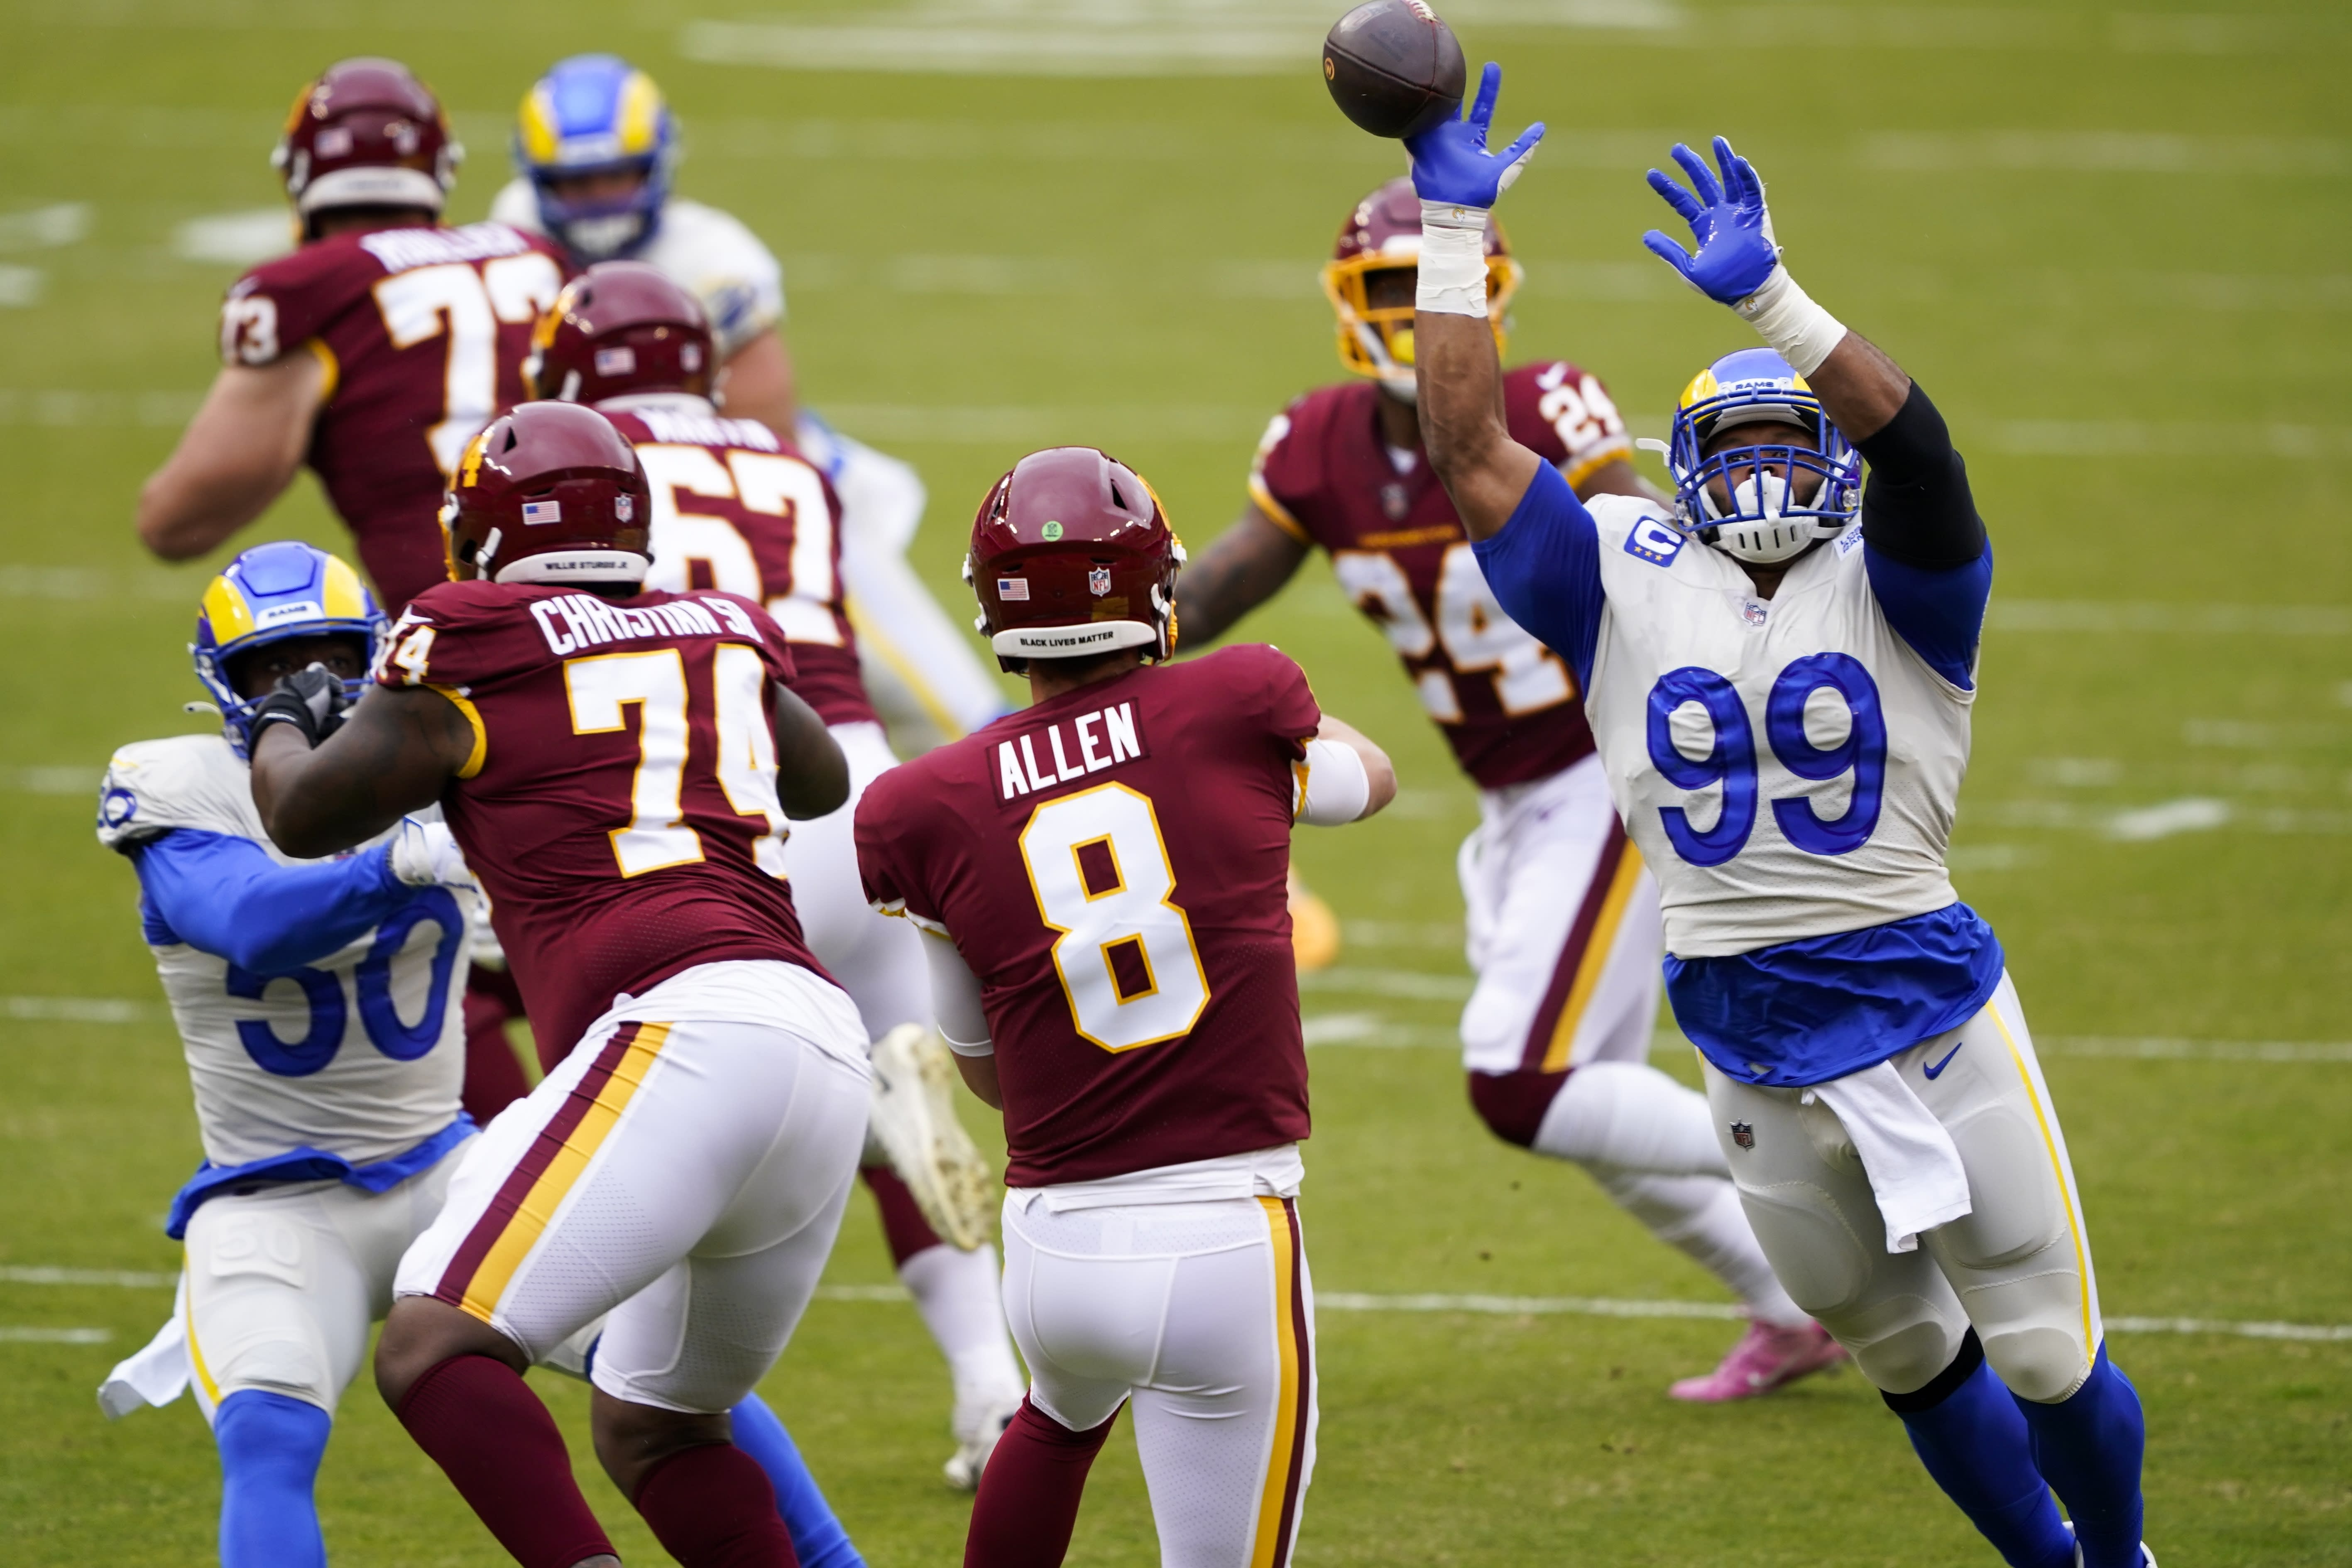 Washington Football Team's Kyle Allen throws with Los Angeles Rams' Aaron Donald rushing during the first half of an NFL football game Sunday, Oct. 11, 2020, in Landover, Md. (AP Photo/Susan Walsh)